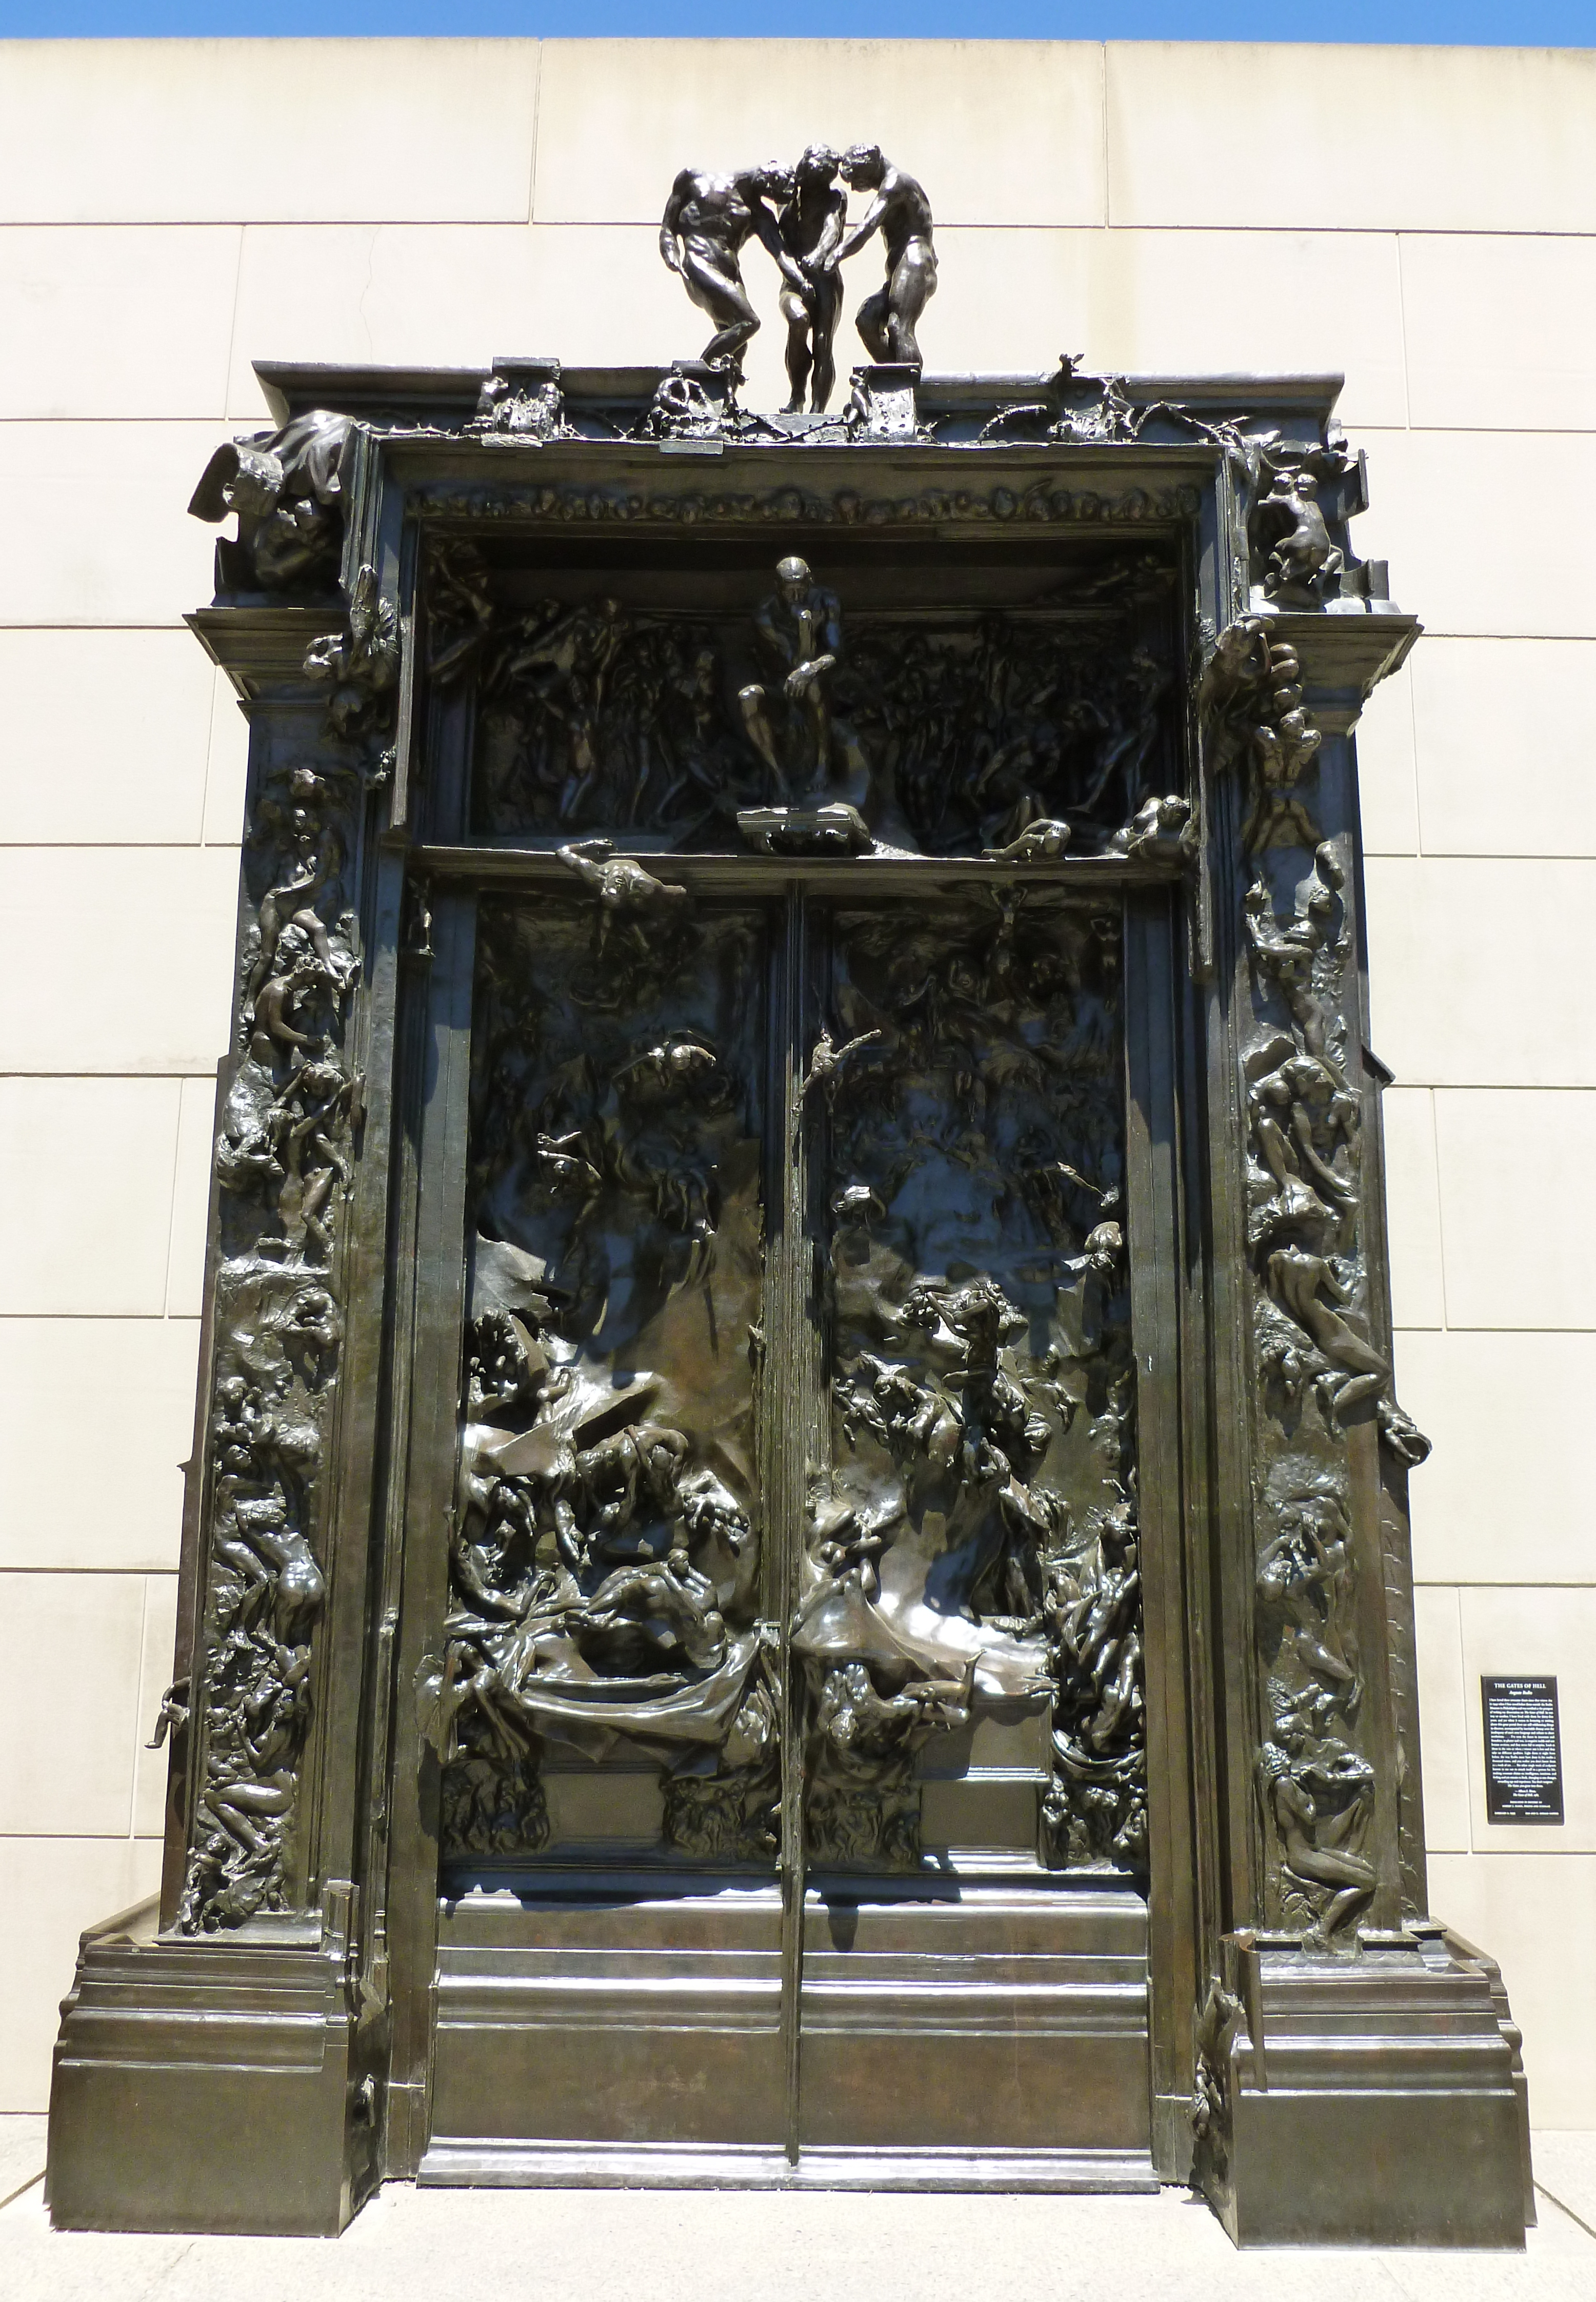 File:Gates of Hell sculpture by Rodin.JPG - Wikimedia Commons Rodin Gates Of Hell